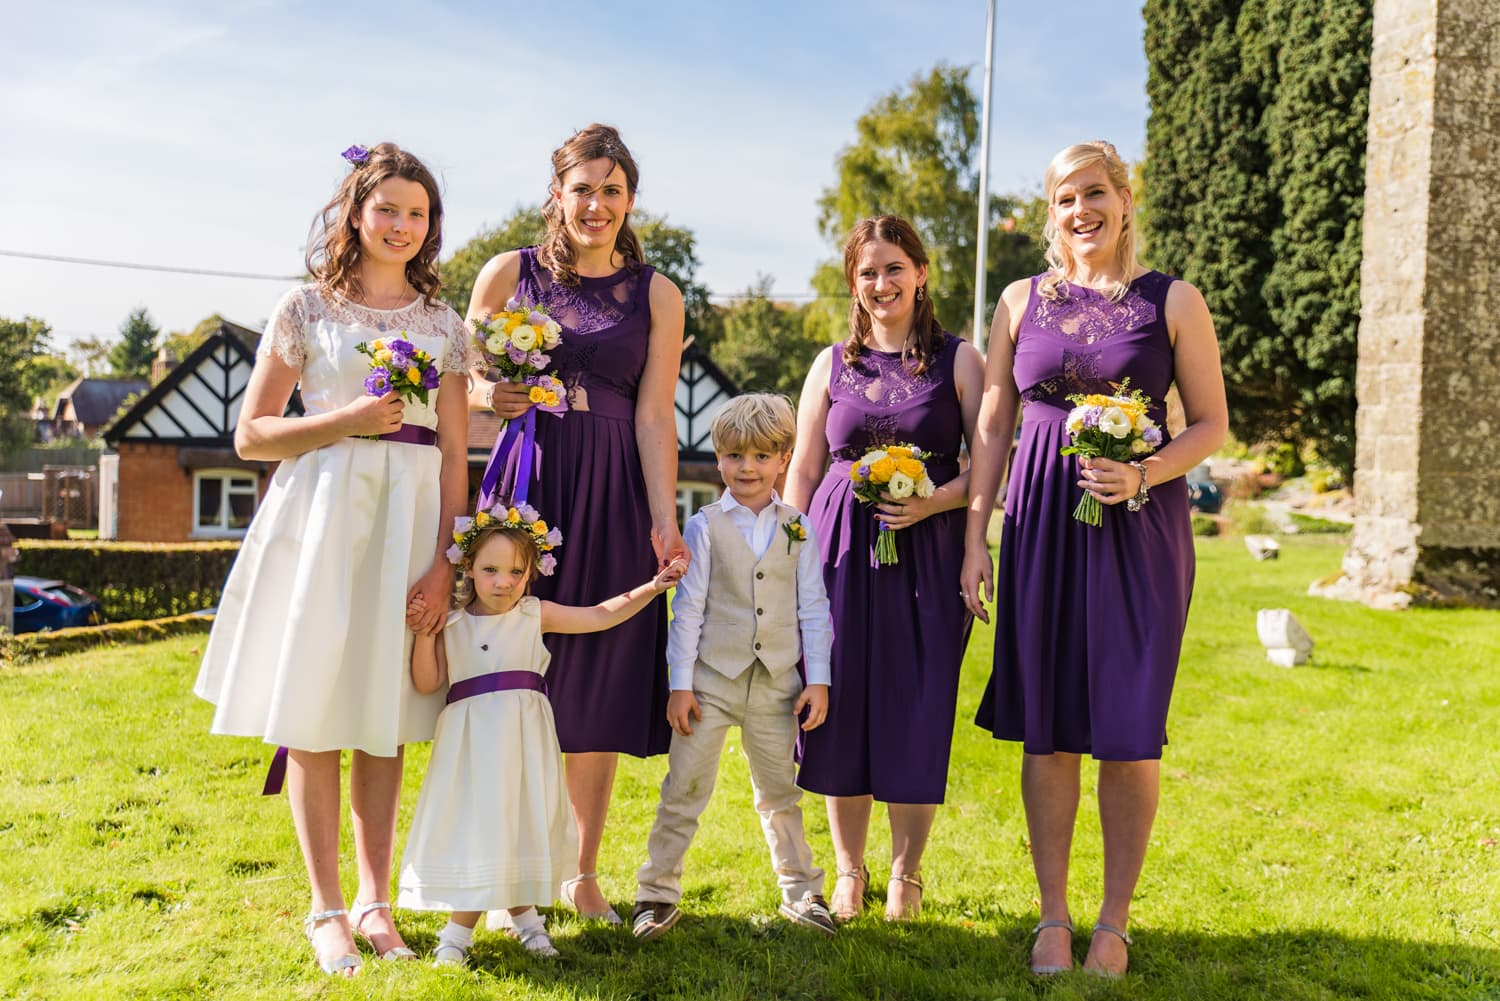 044-bridesmaids-outside-church.jpg